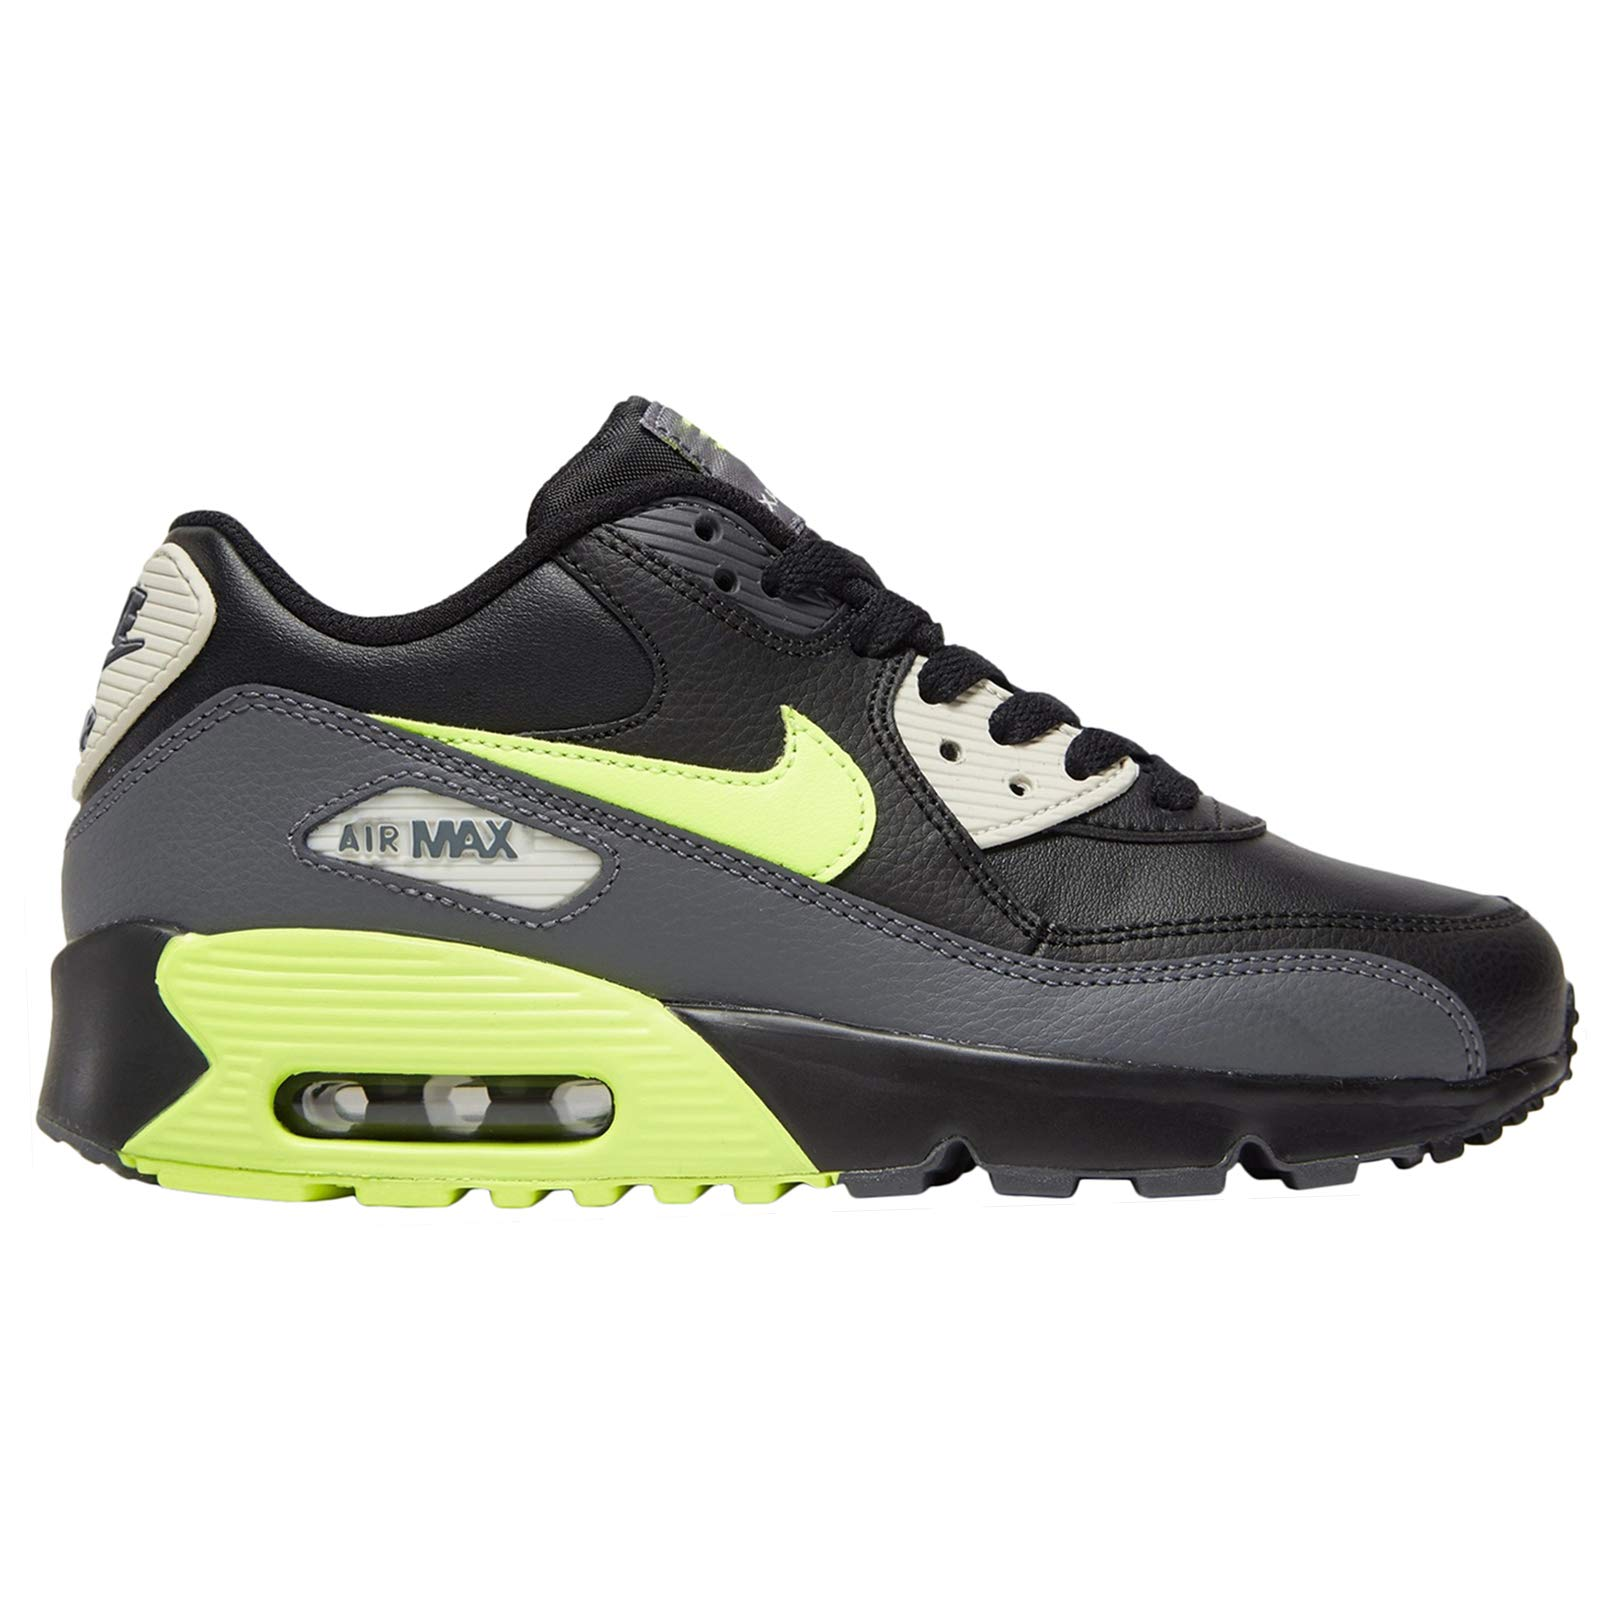 NIKE Youth Air Max 90 LTR Leather Dark Grey Volt Black Trainers 7 US